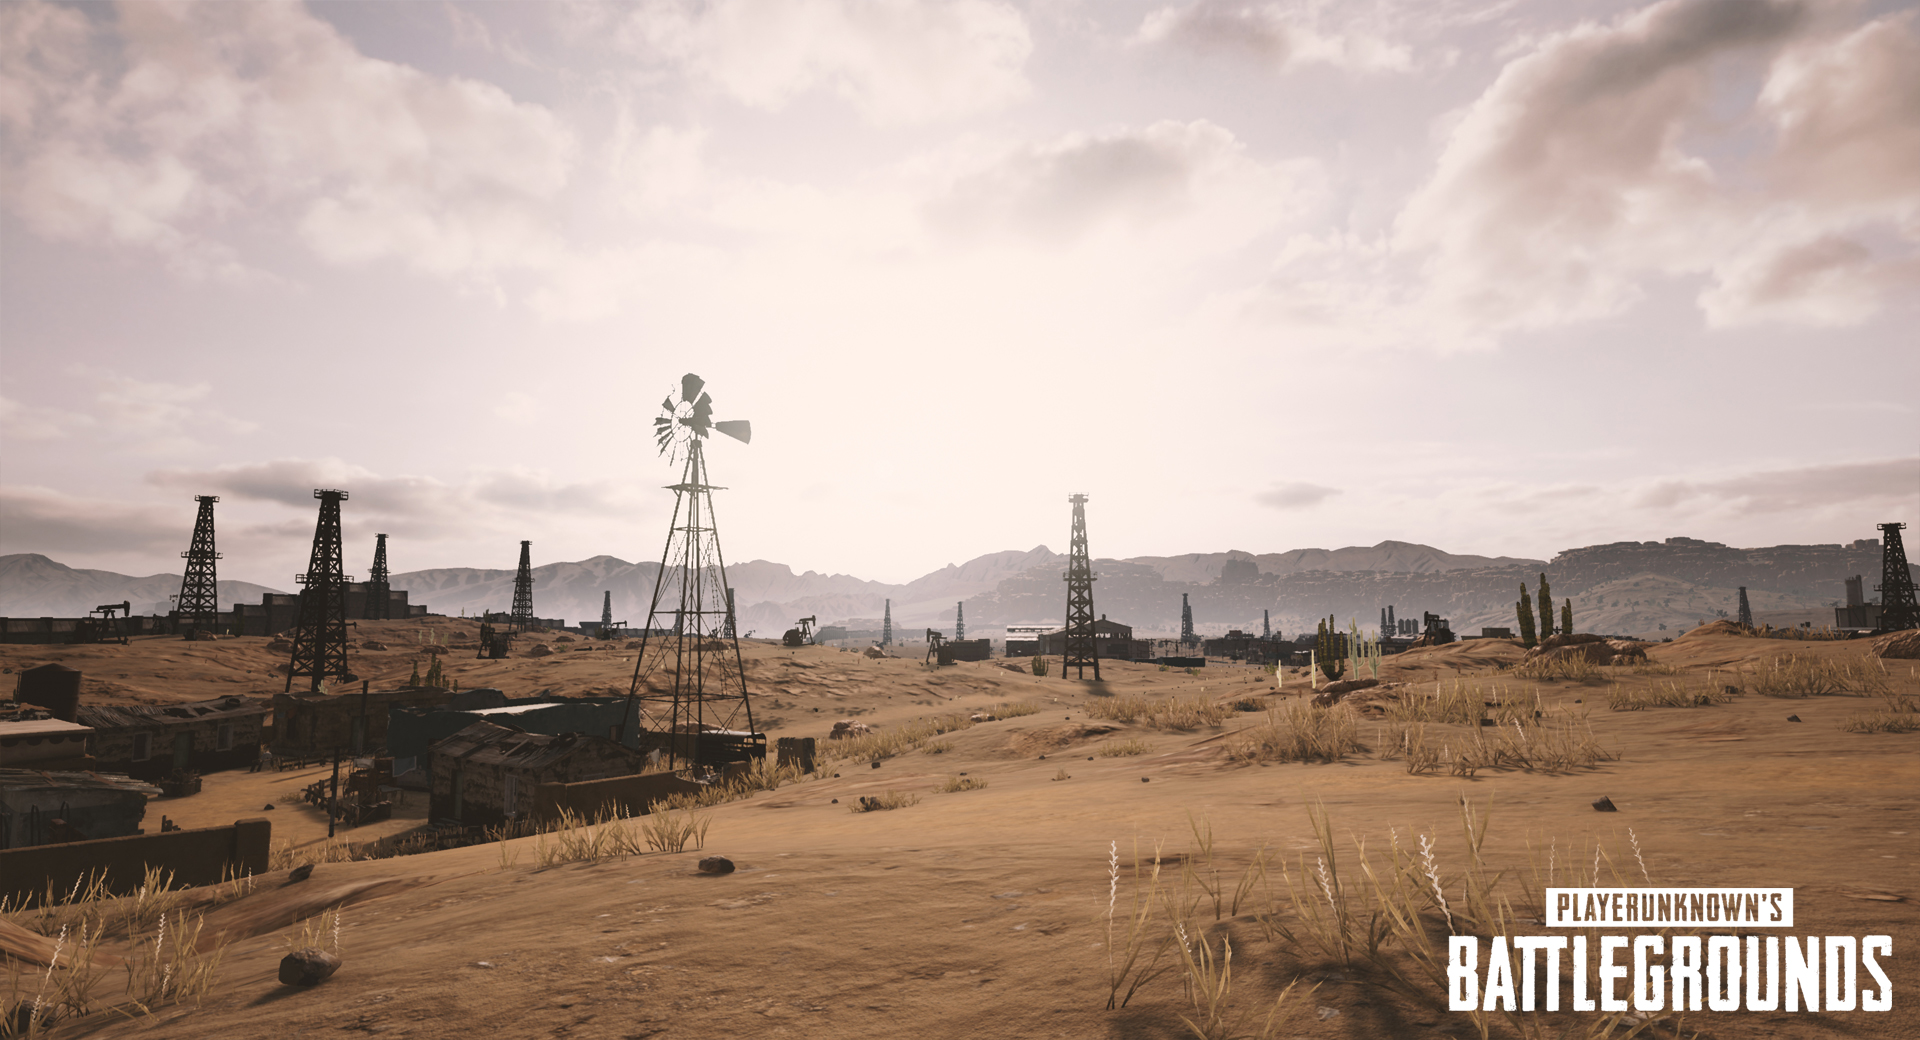 Playerunknown S Battlegrounds Maps Loot Maps Pictures: Check Out 5 New, Exclusive PUBG Desert Map Screenshots